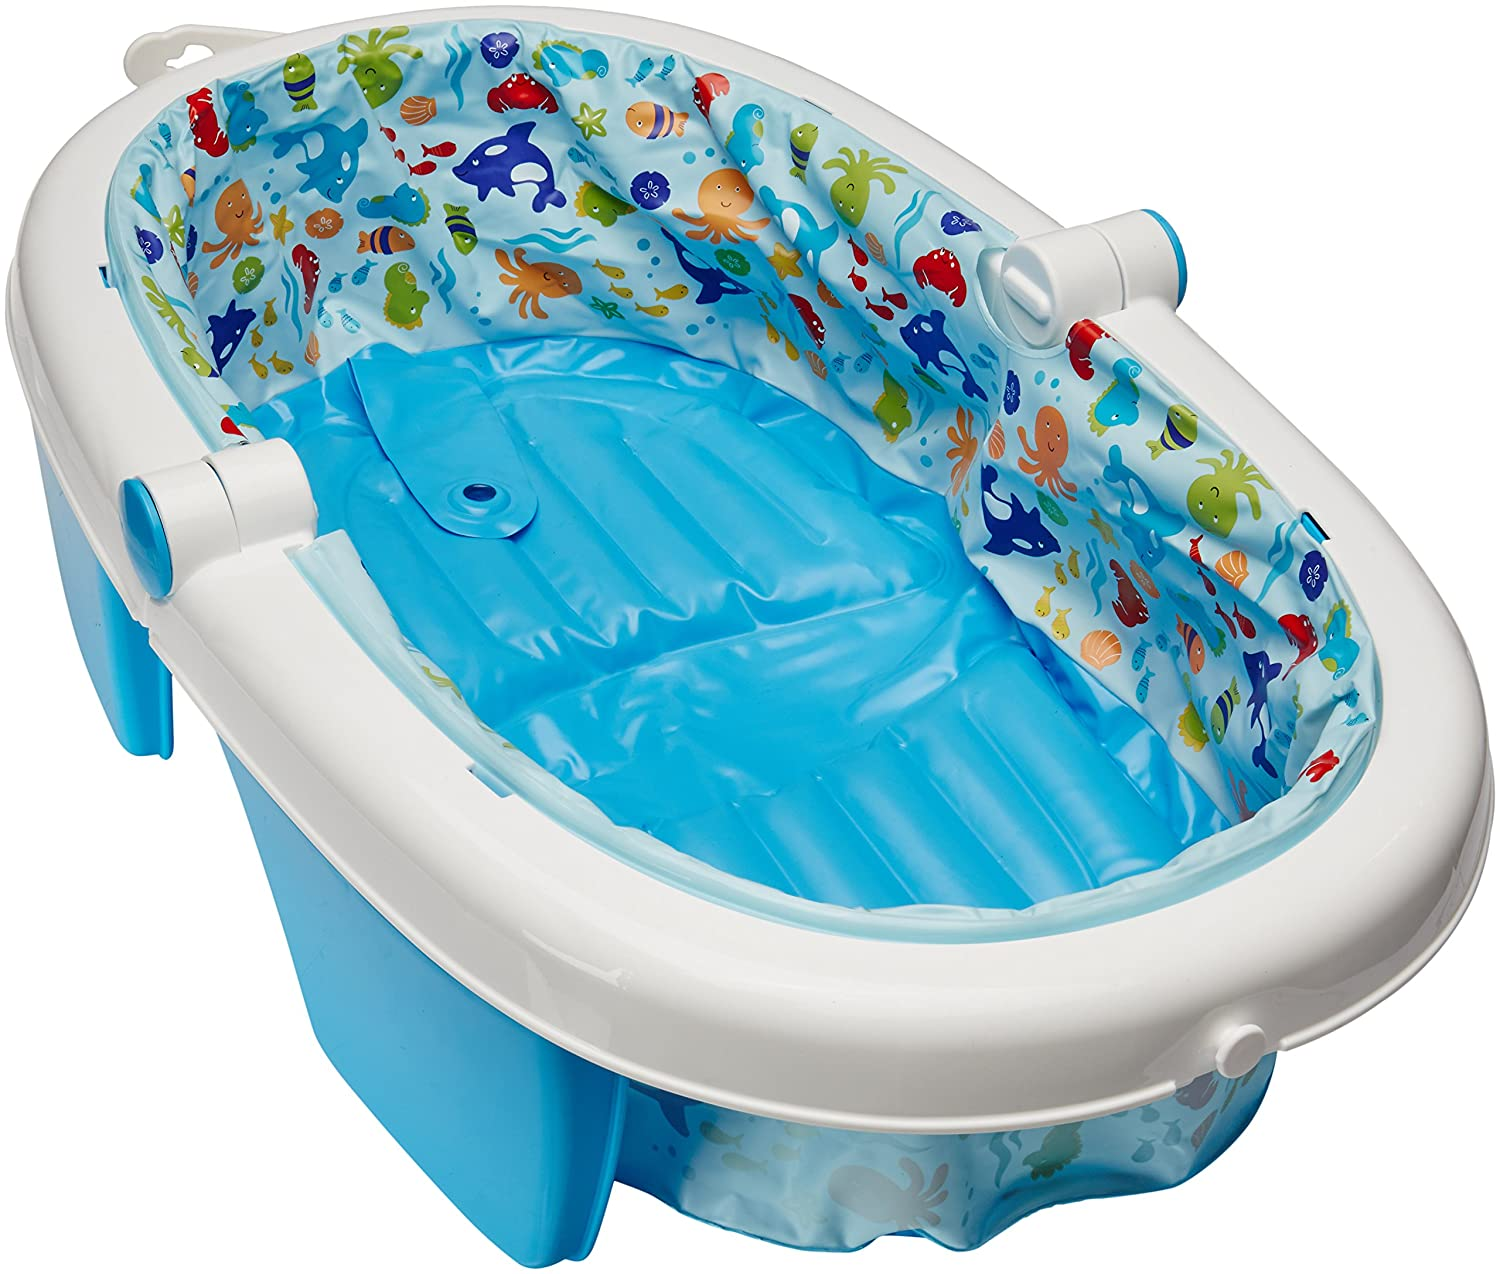 Amazon.com : Summer Infant Fold Away Baby Bath : Baby Bathing Seats ...